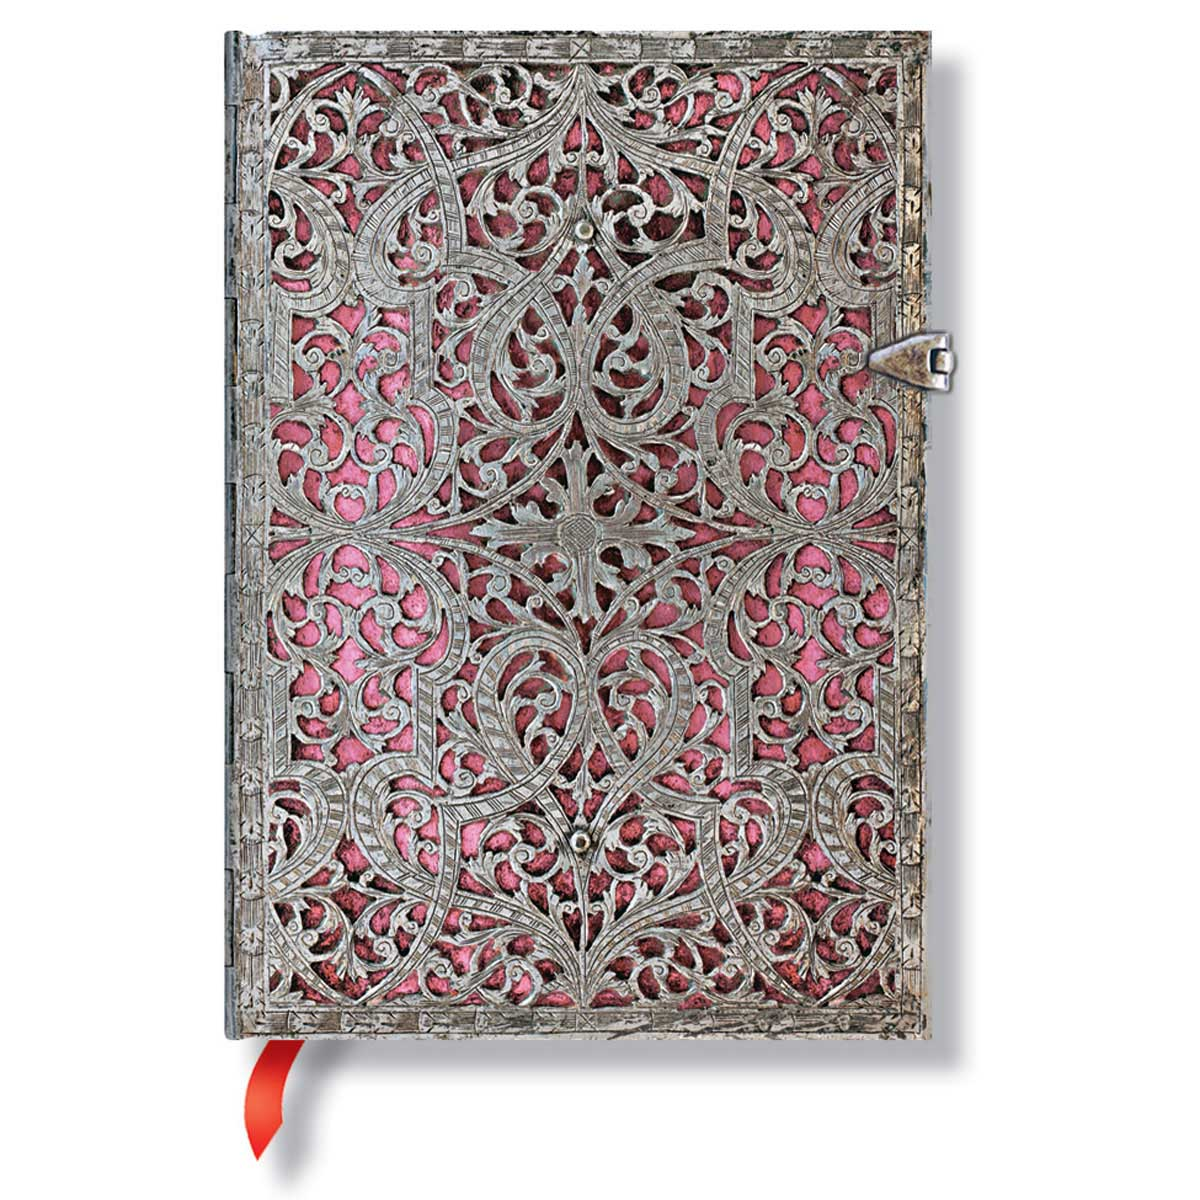 Paperblanks Filigree Blush Pink 5 x 7 Inch Midi Journal